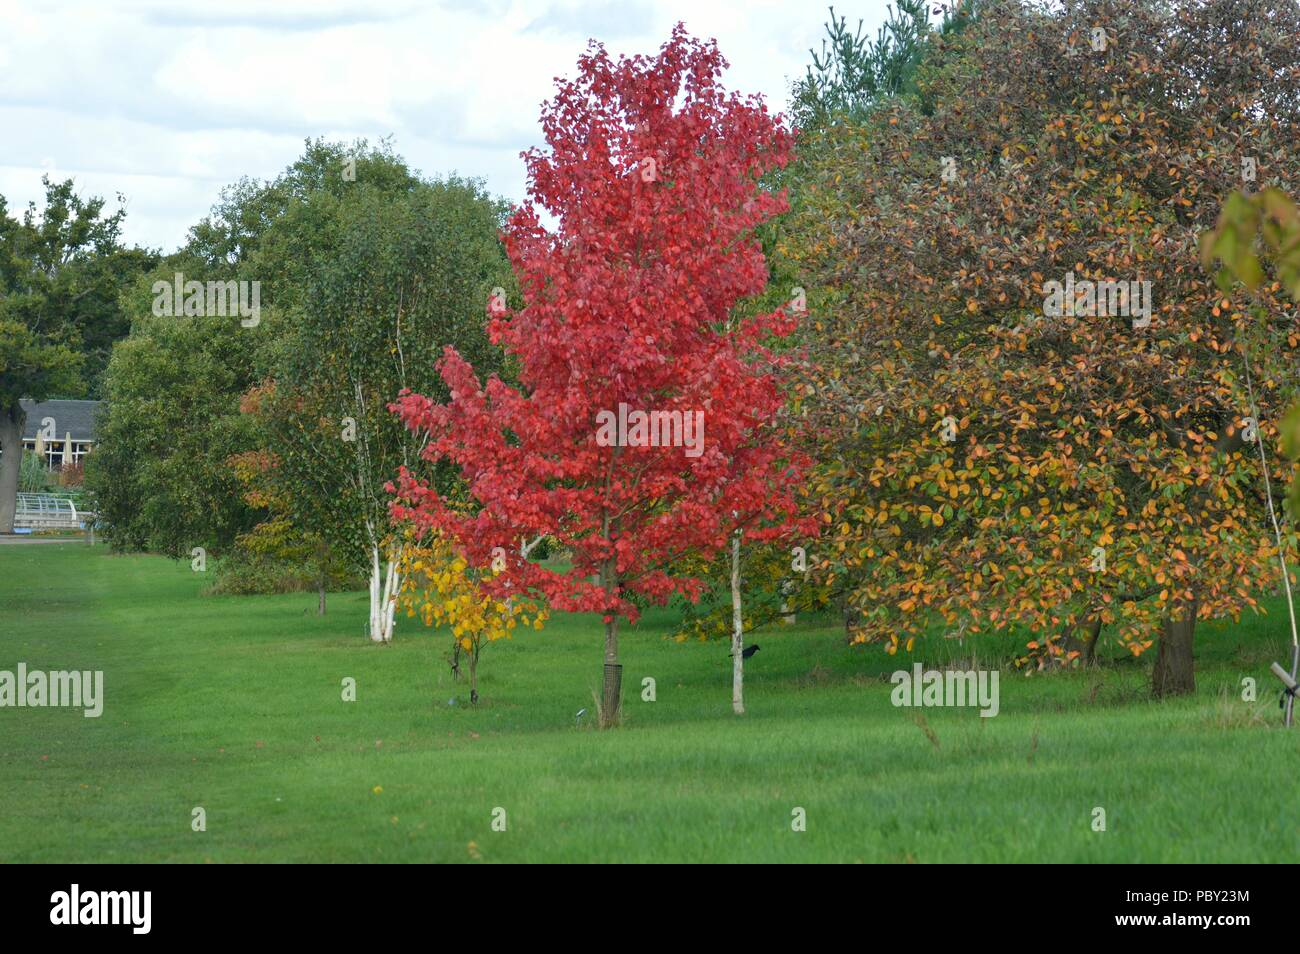 Ahorn October Glory Acer Rubrum October Glory Stock Photos Acer Rubrum October